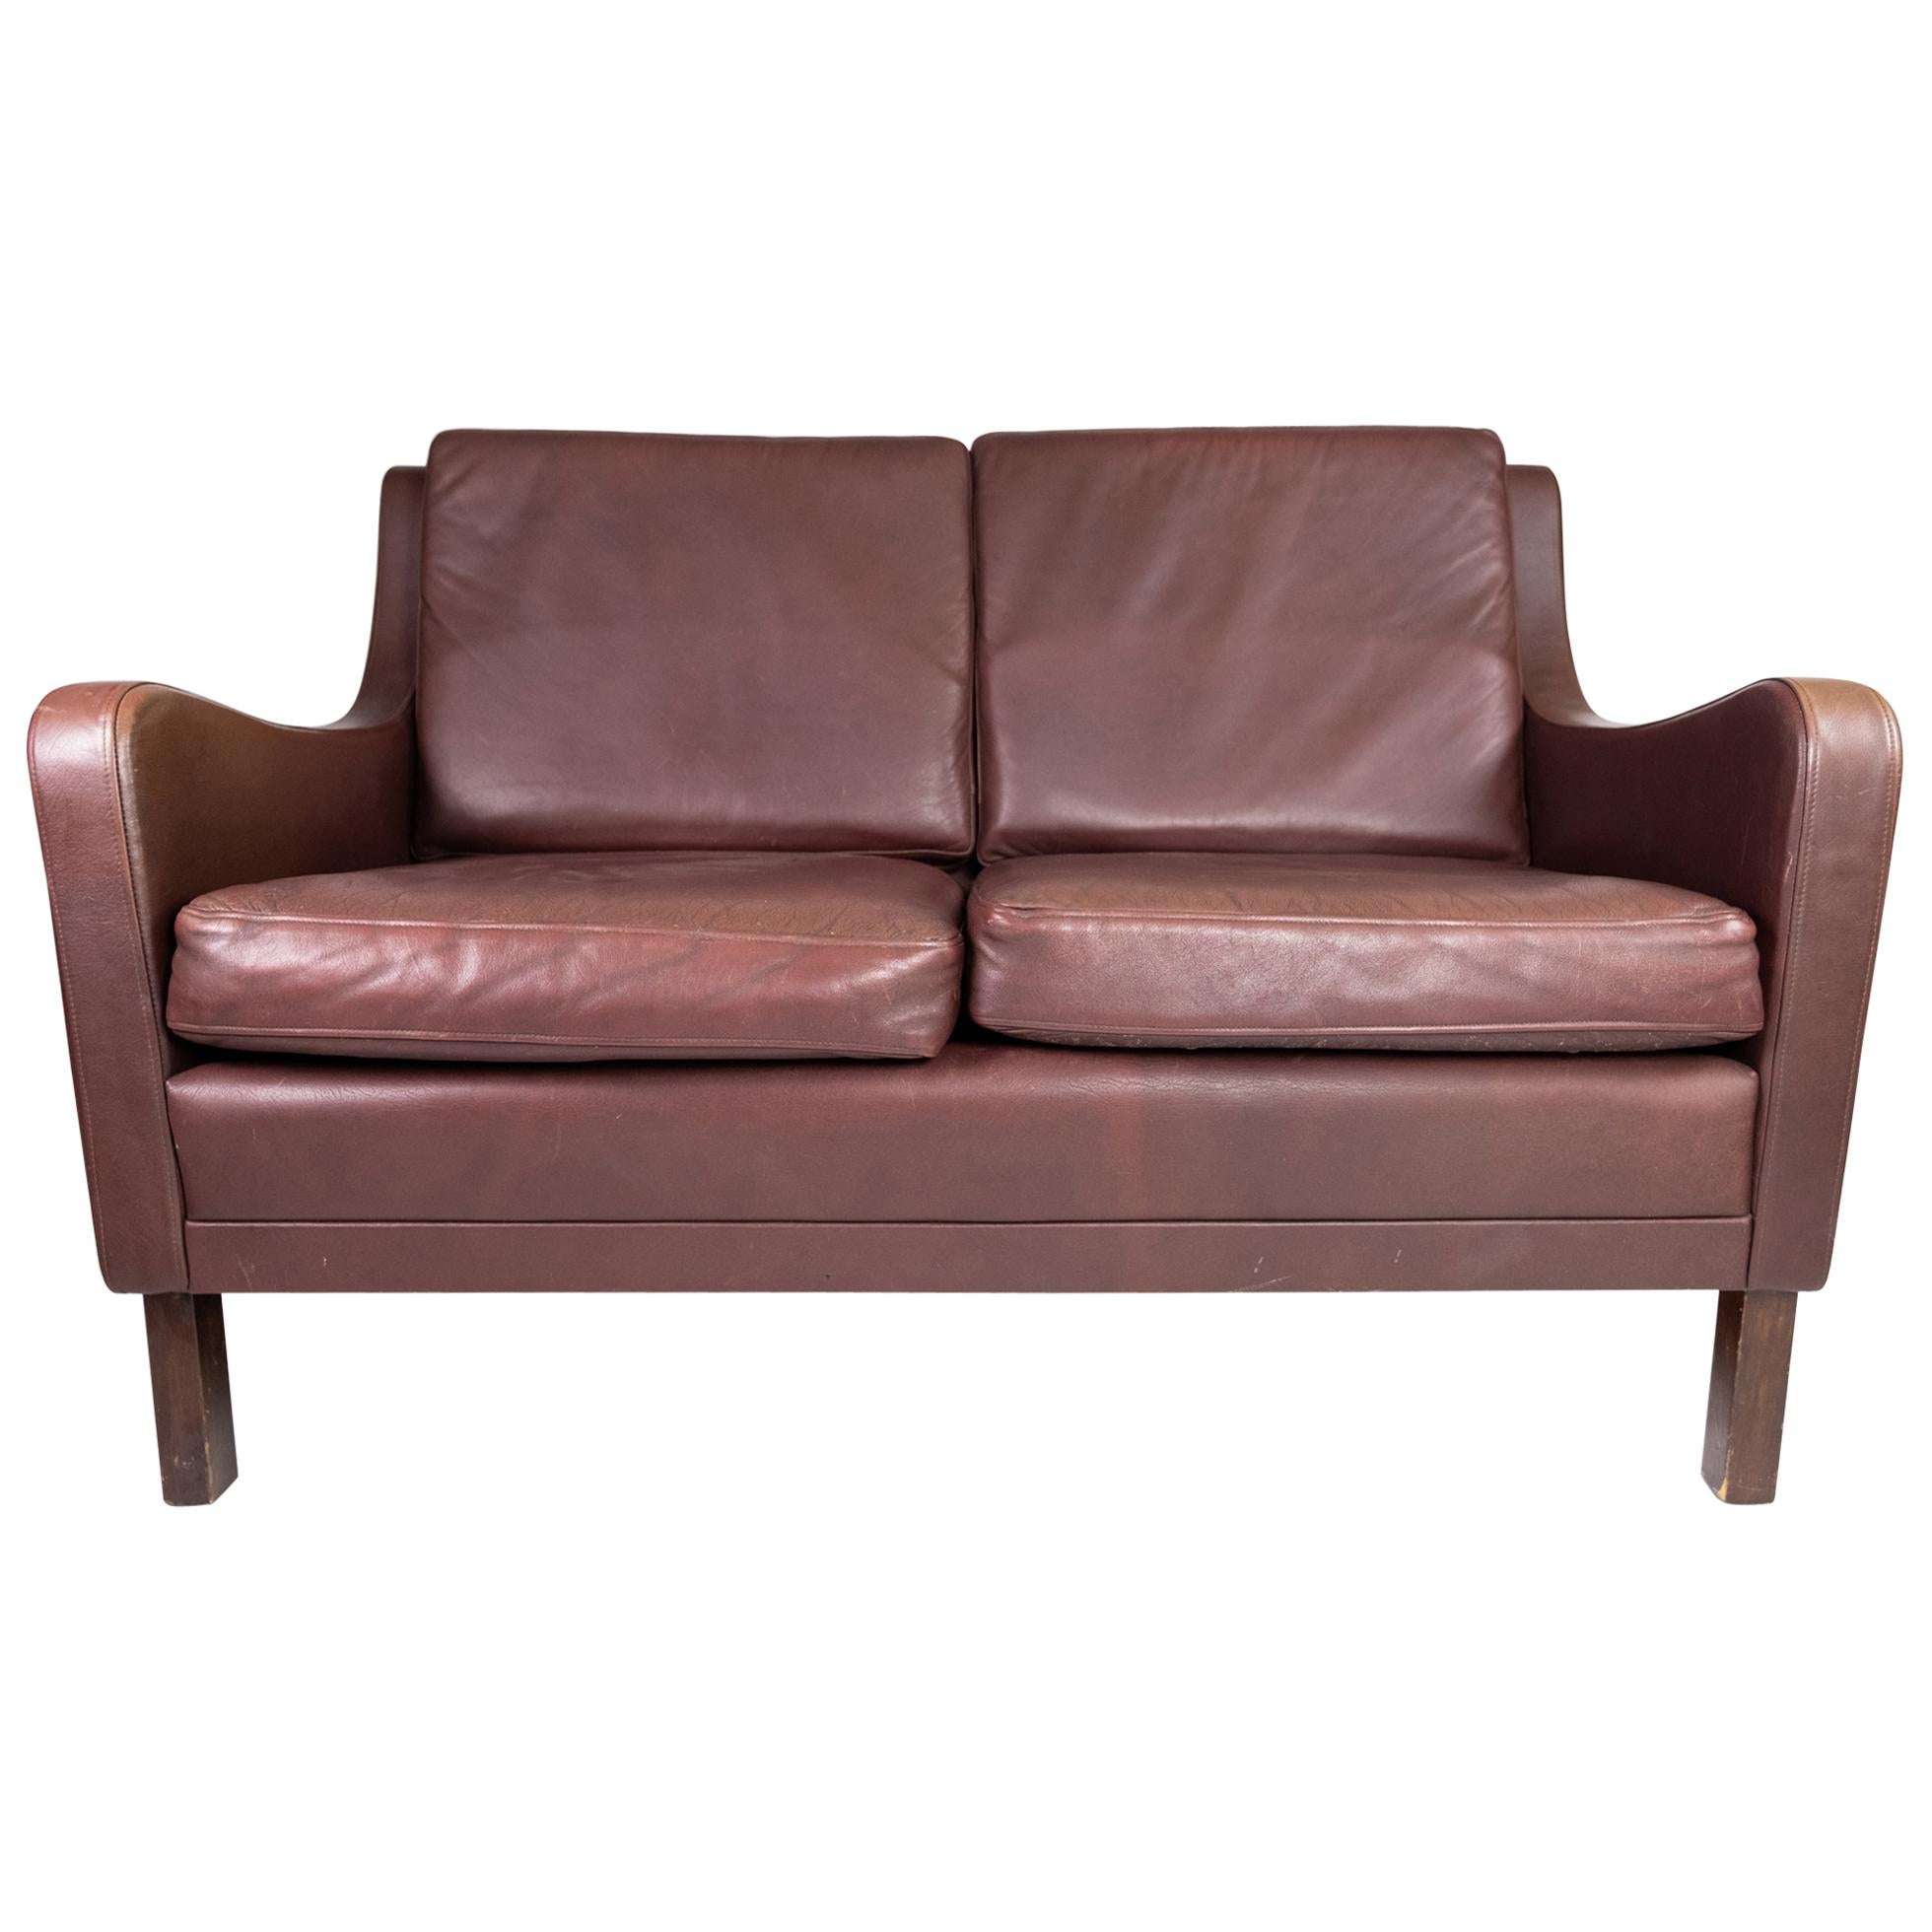 Two-Seat Sofa, with Red Brown Leather by Stouby Furniture